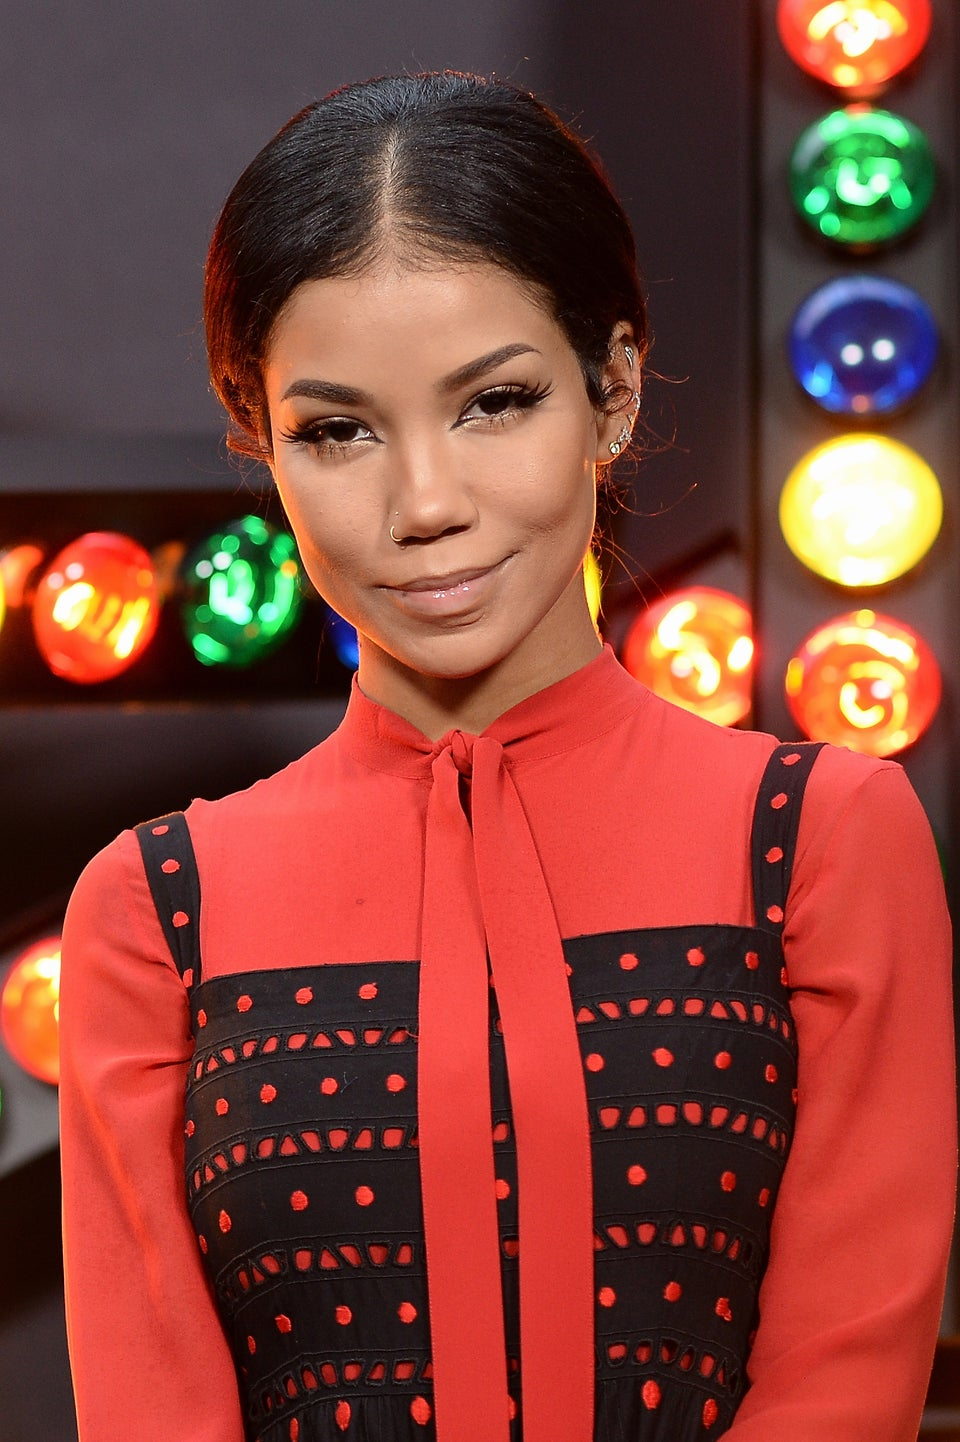 Forever Young: Jhené Aiko Shares The Secret To Her Flawless Skin